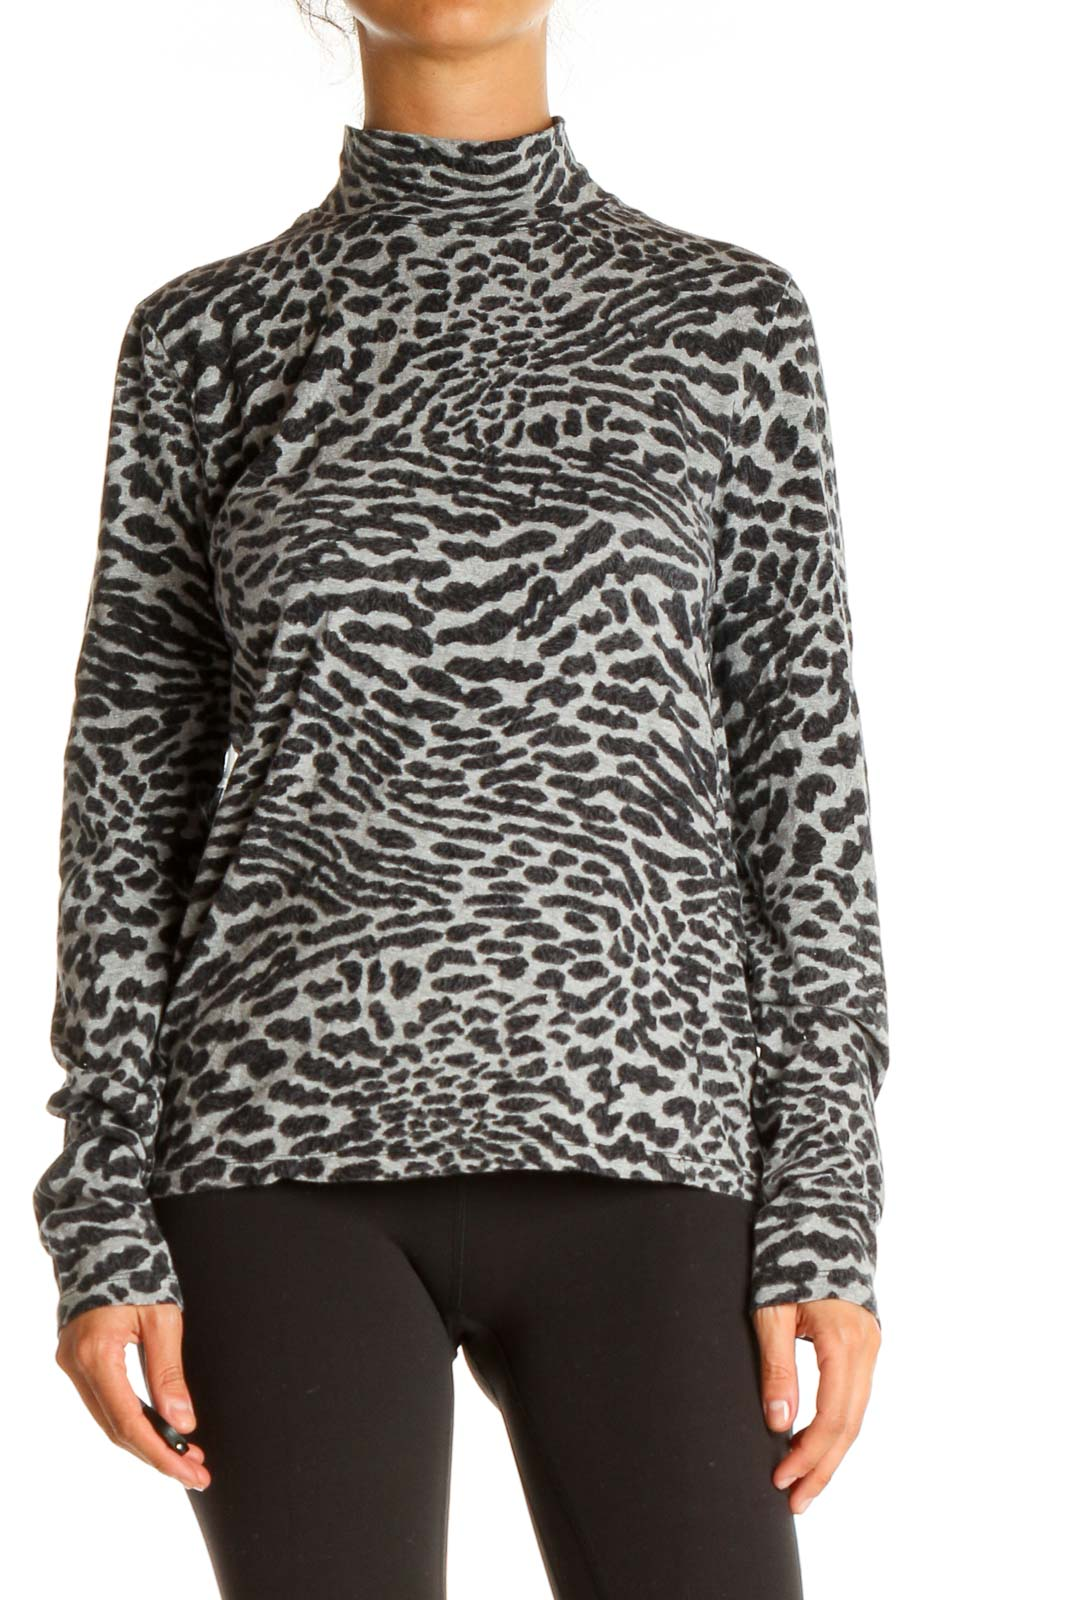 Black Animal Print All Day Wear Top Front